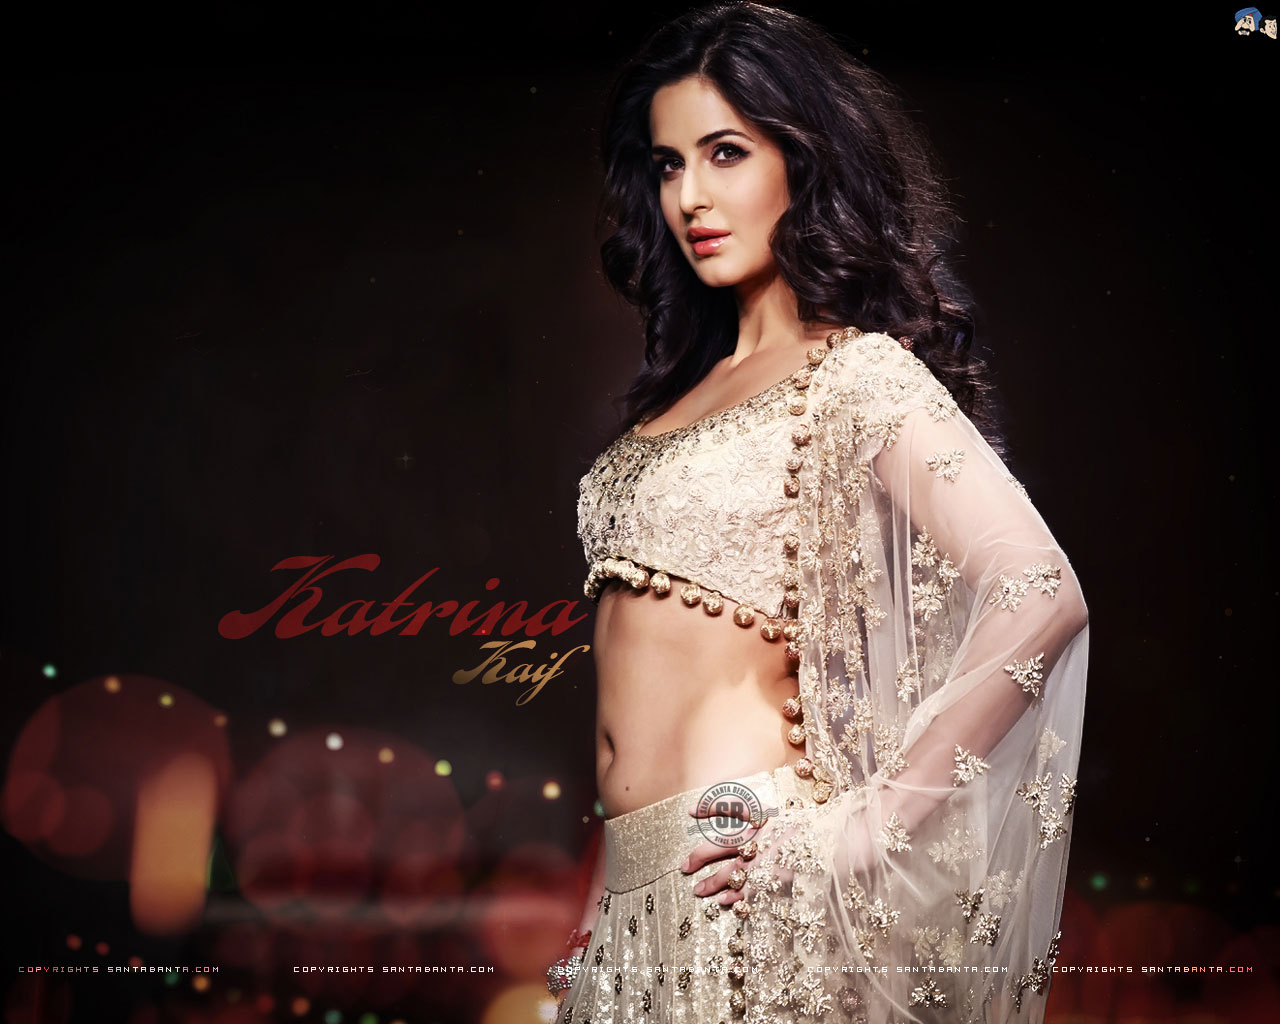 Katrina Kaif Wallpapers - Full Hd Wallpaper-8647